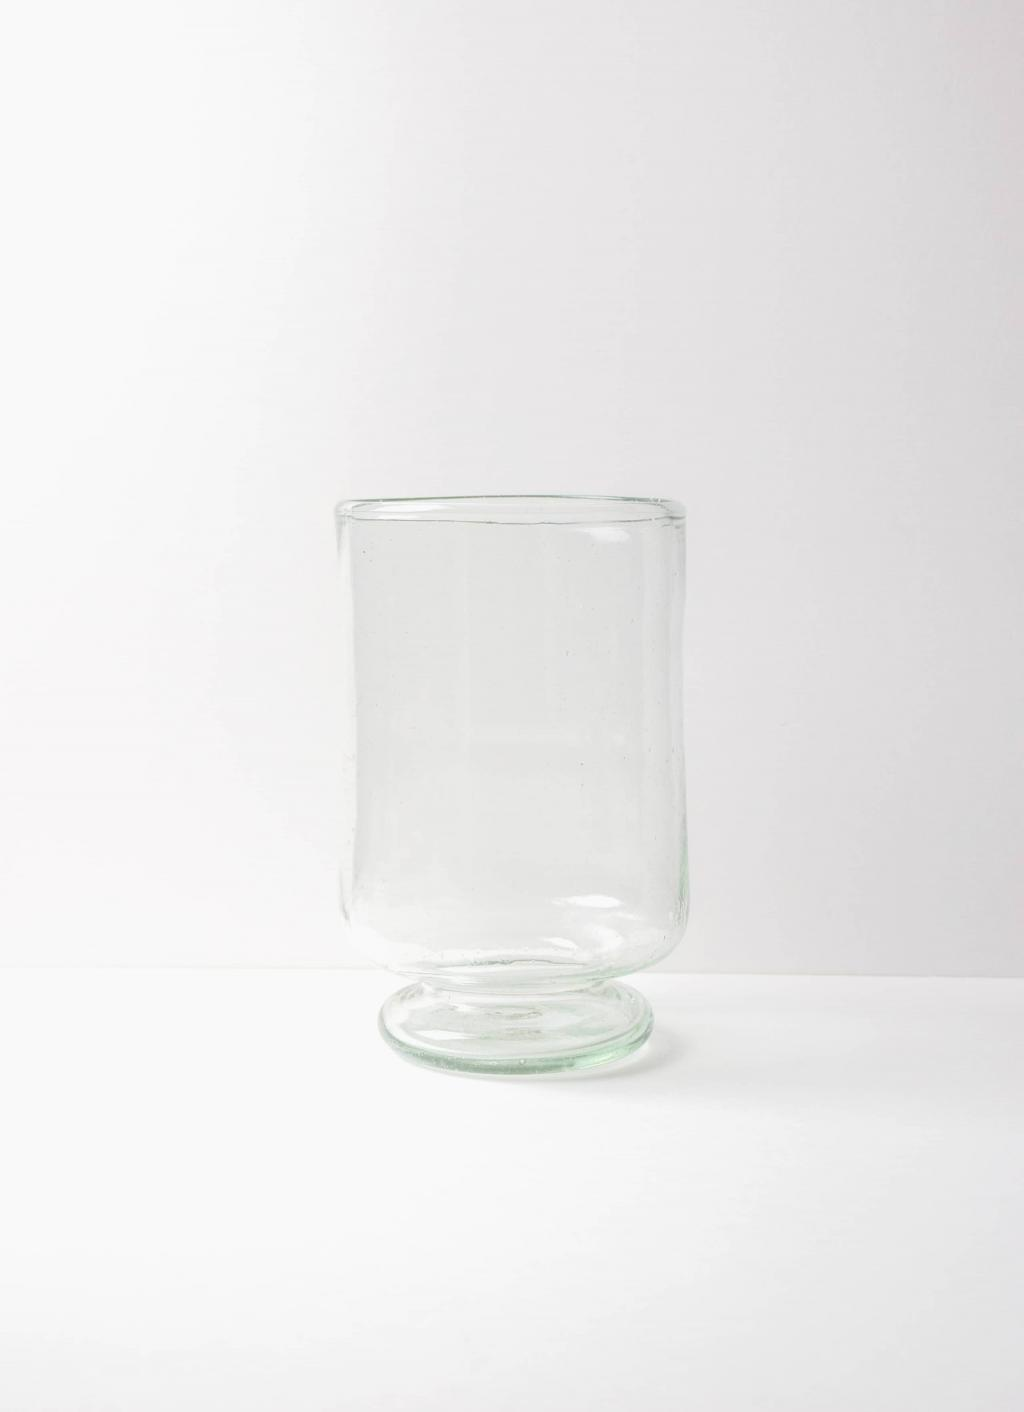 La Soufflerie - Pied Douche - Glass Vase - transparent